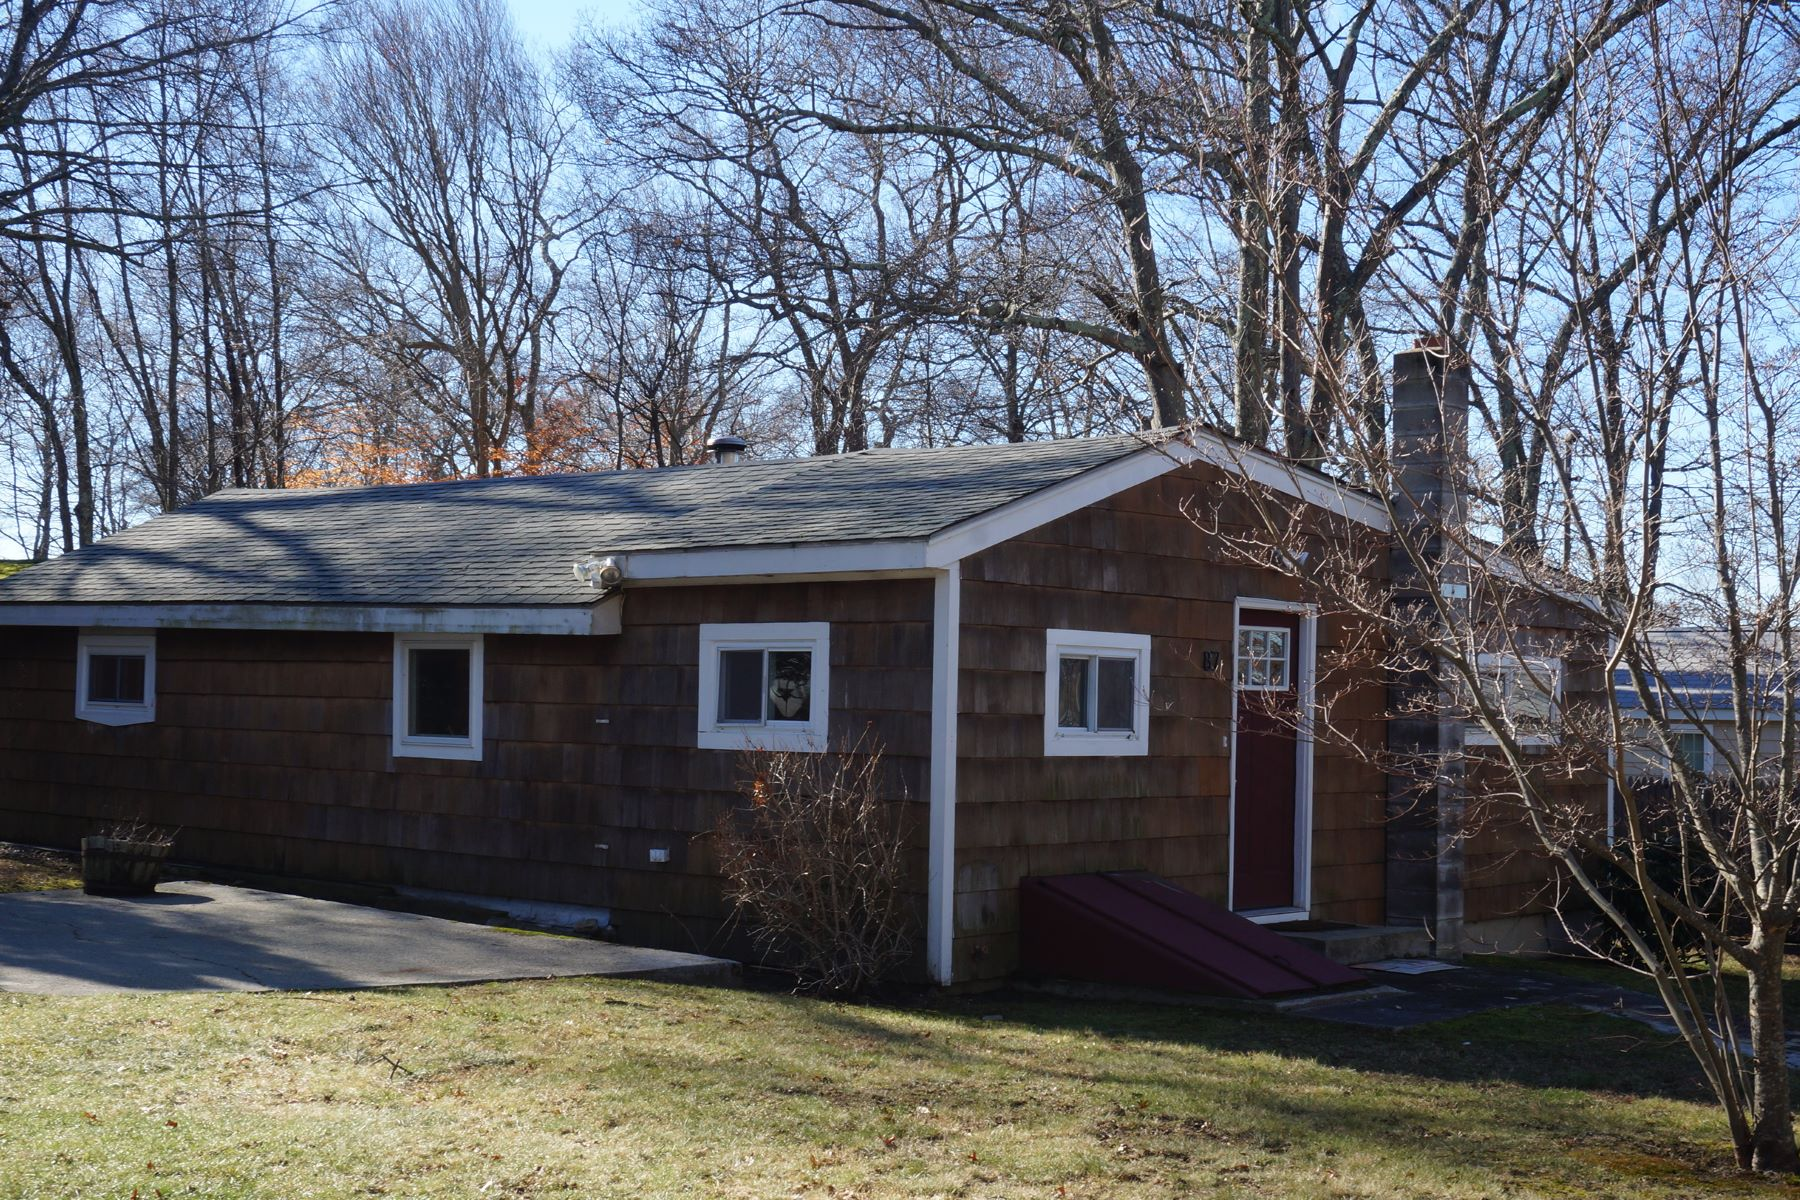 Single Family Home for Sale at Stafford Pond Cottage 87 Forand Lane Tiverton, Rhode Island 02878 United States